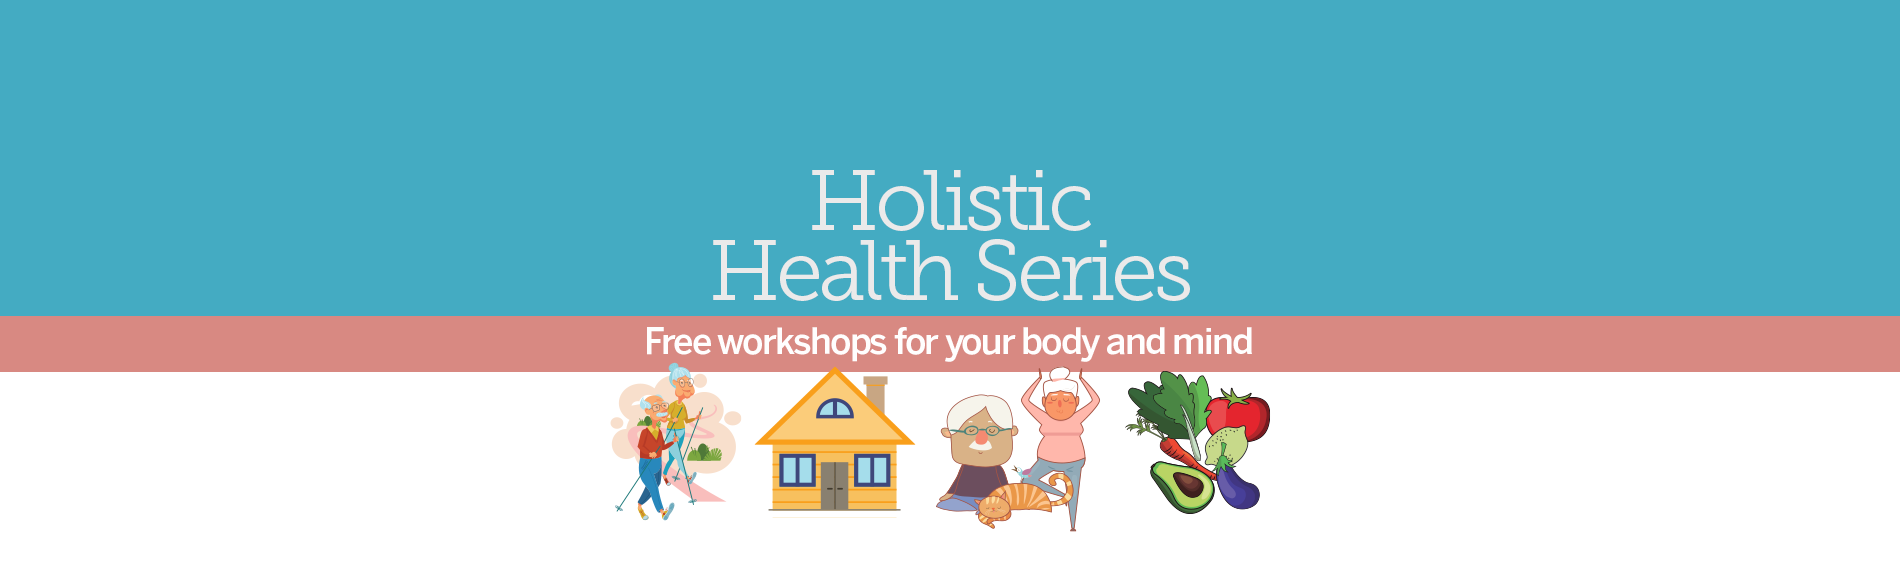 Holistic Health Series